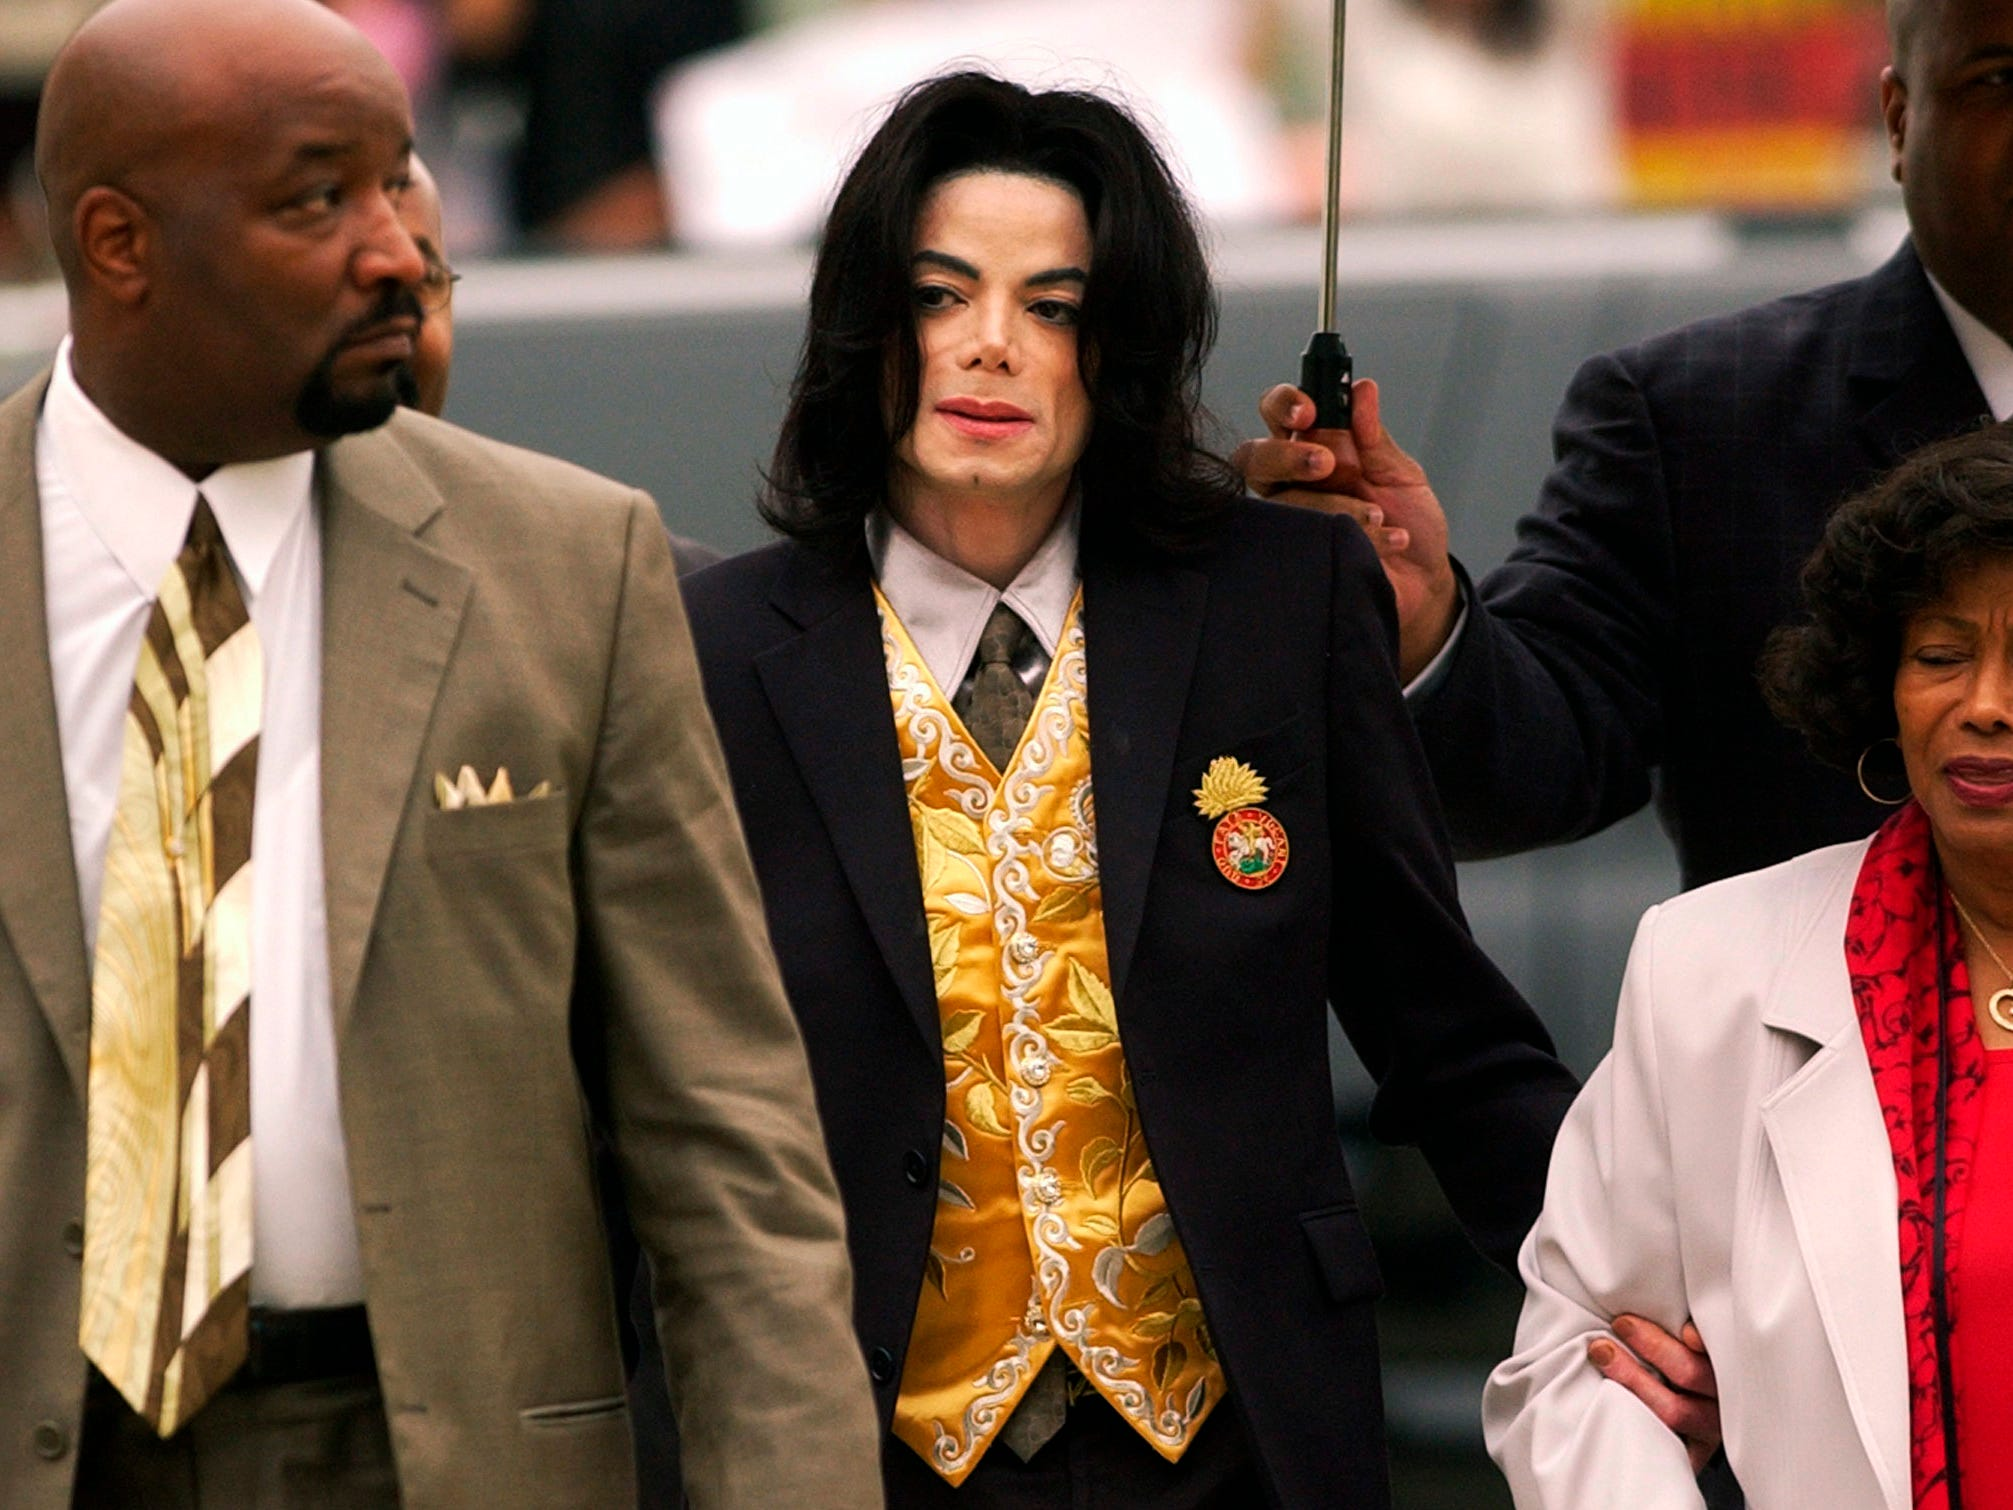 Michael Jackson estate sues over 'Leaving Neverland' documentary; HBO says doc will air